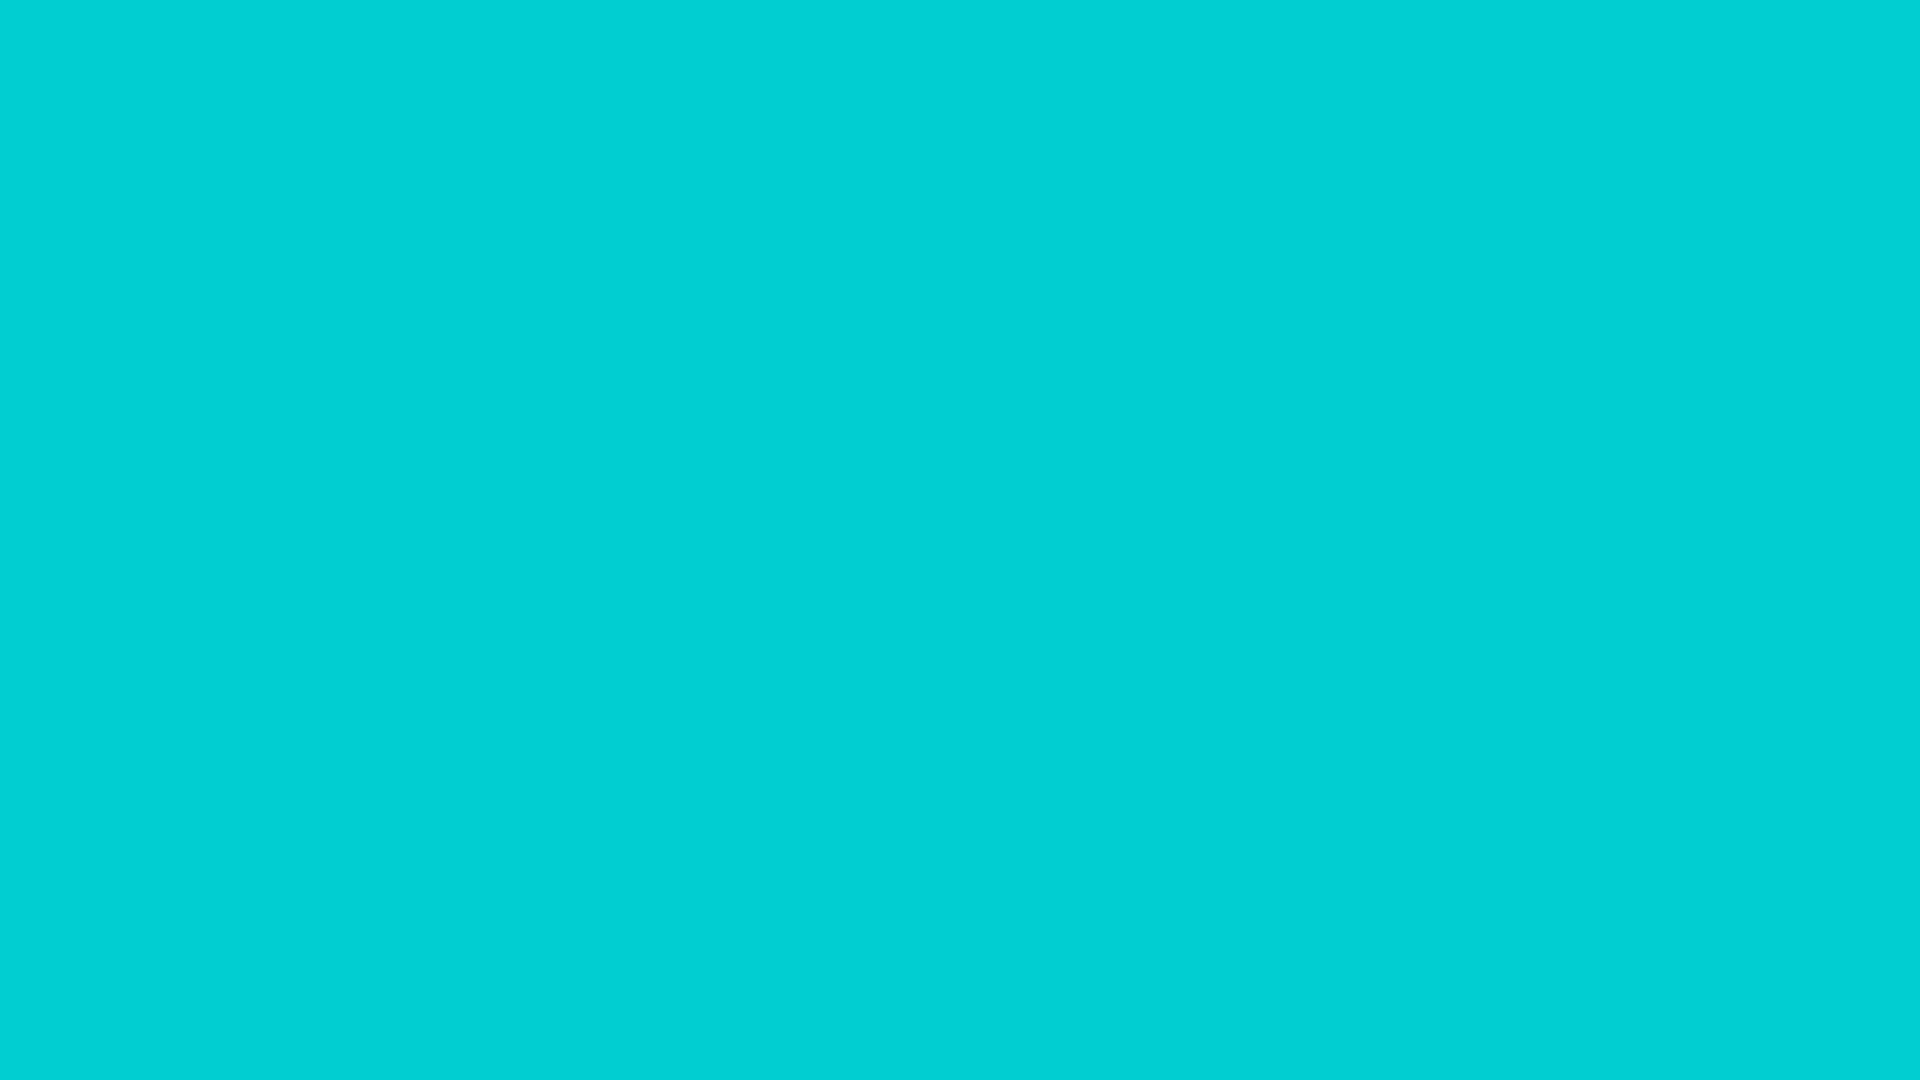 1920x1080 Dark Turquoise Solid Color Background